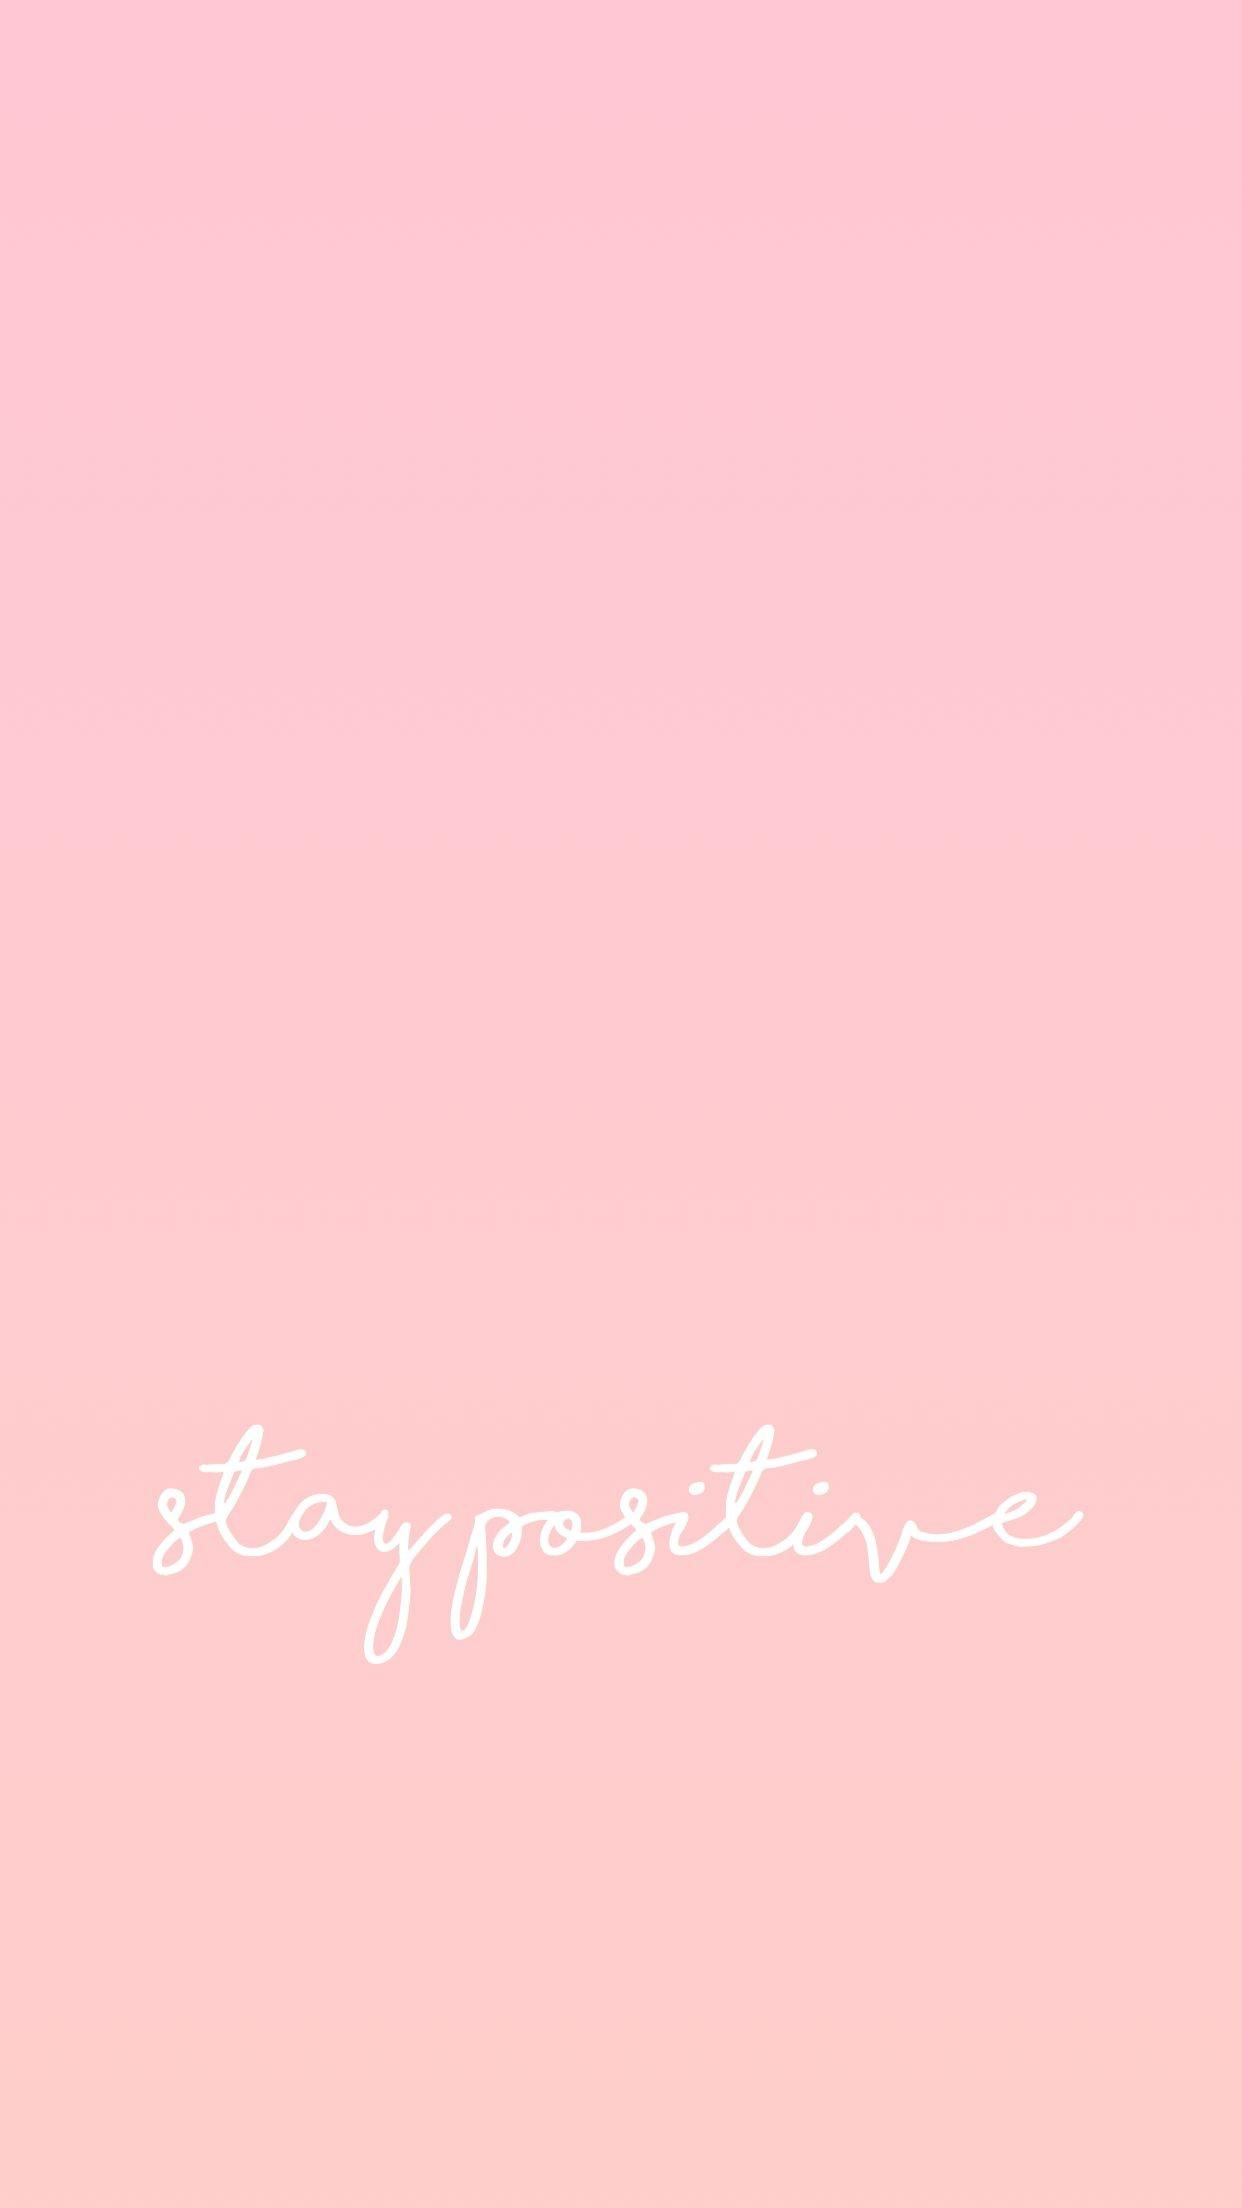 aesthetic quote positive cave